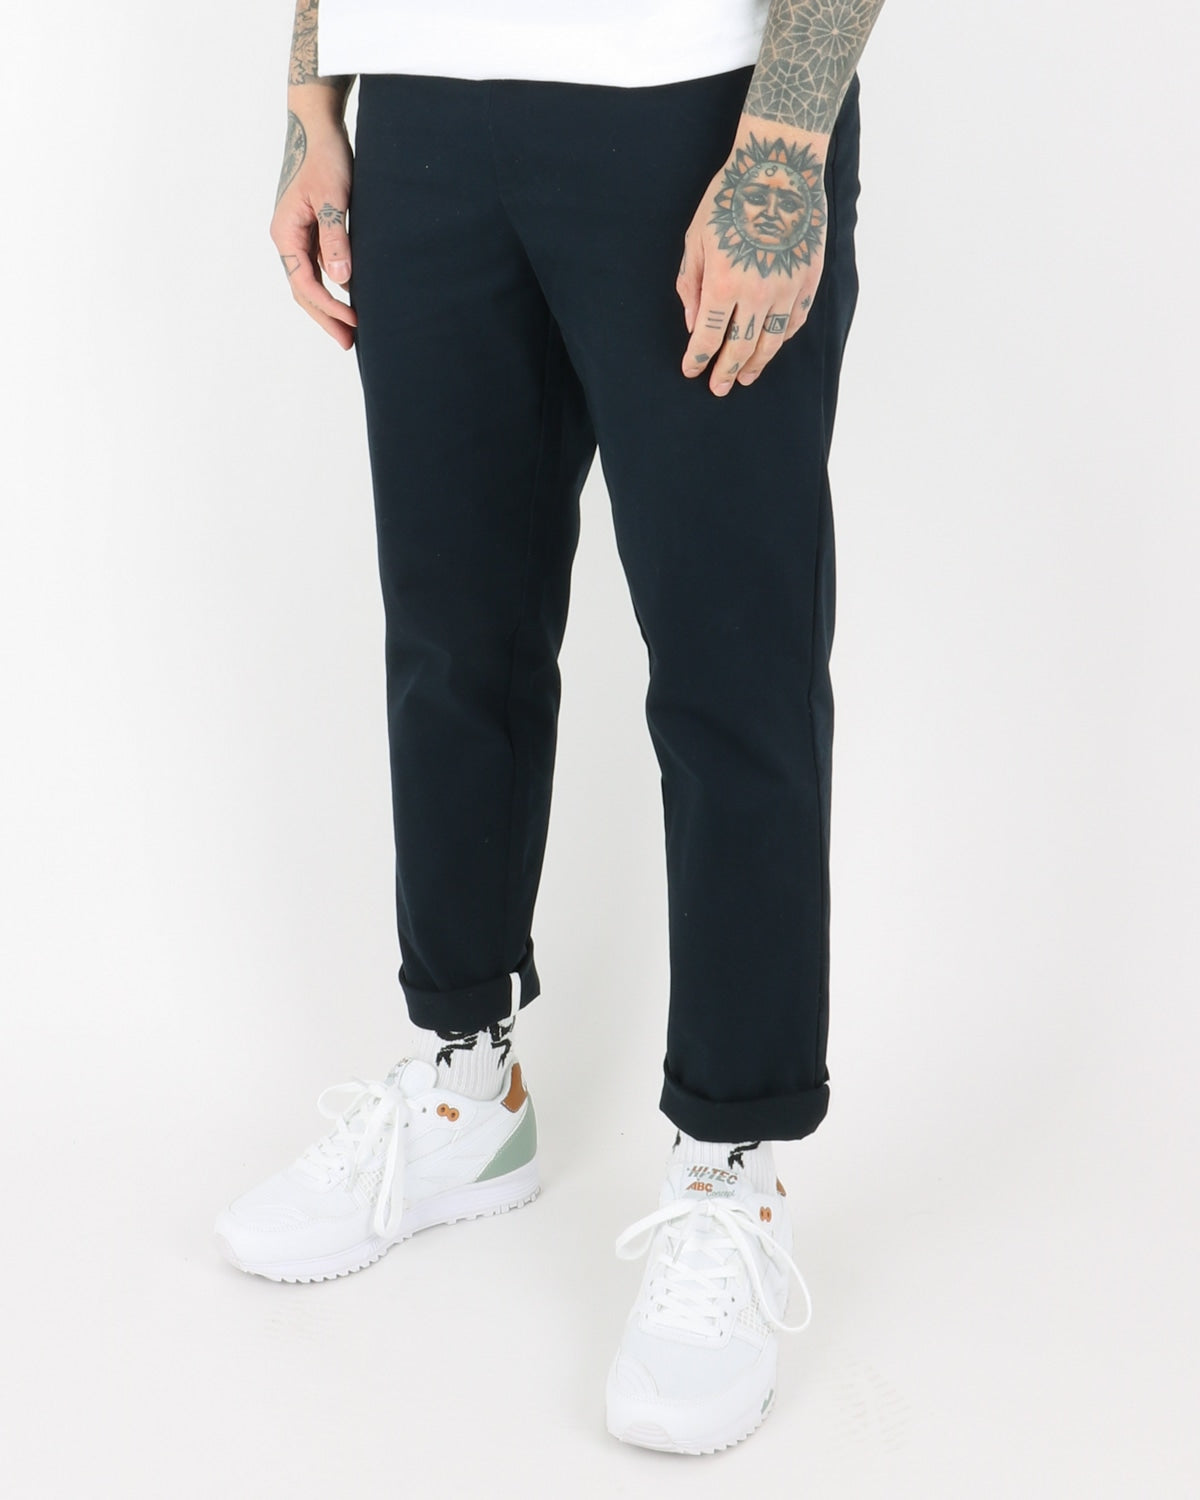 legends_hermosa pants_dark navy_view_2_3